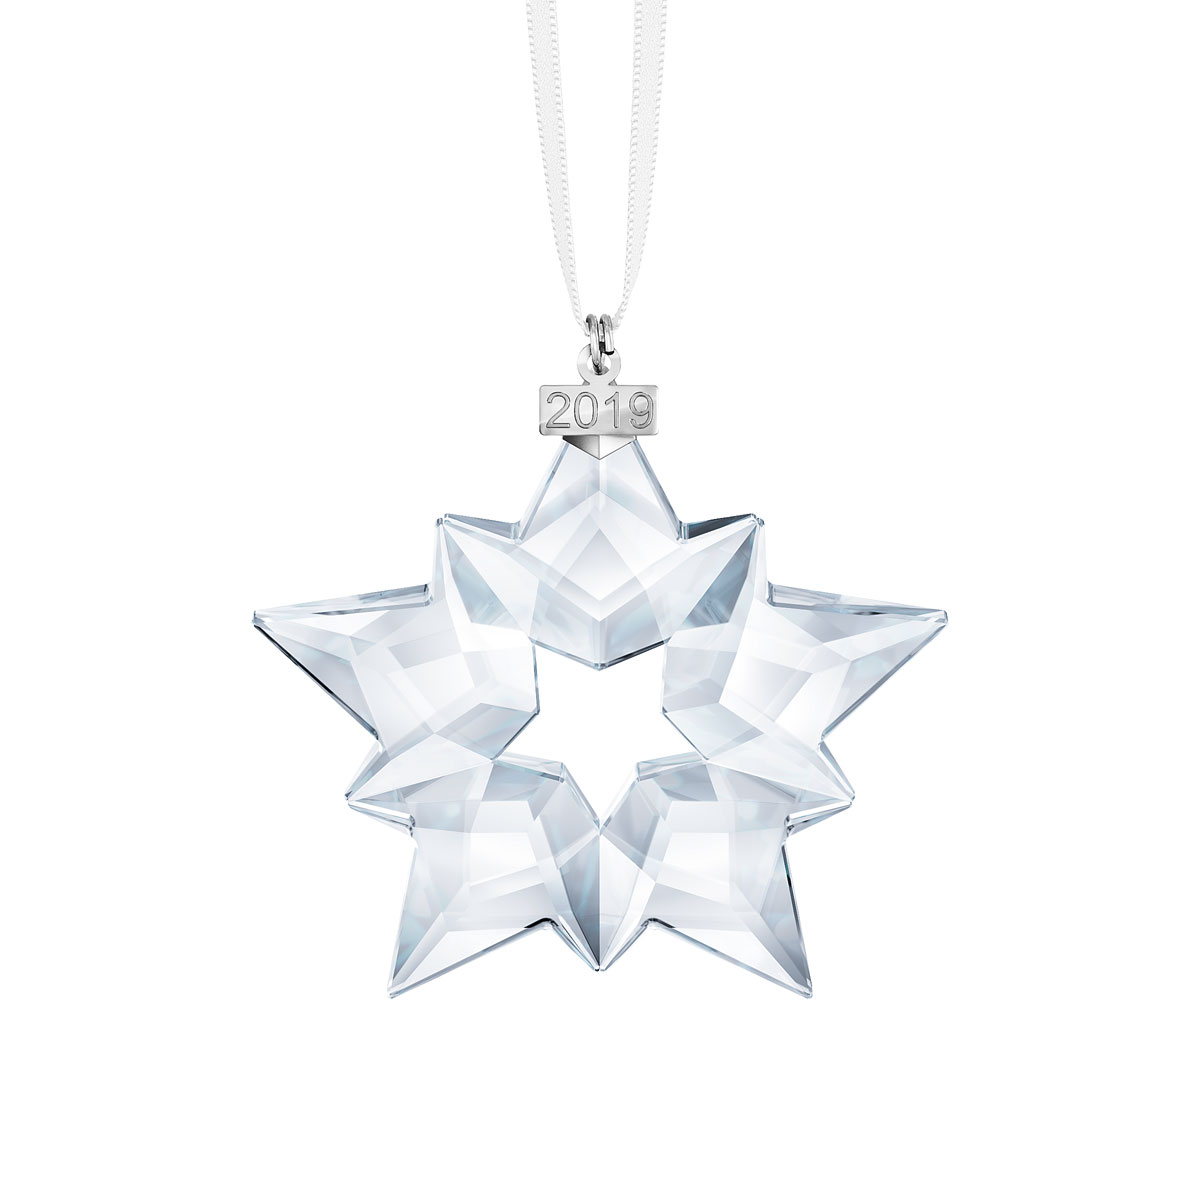 Swarovski Annual Edition Ornament 2019, Star